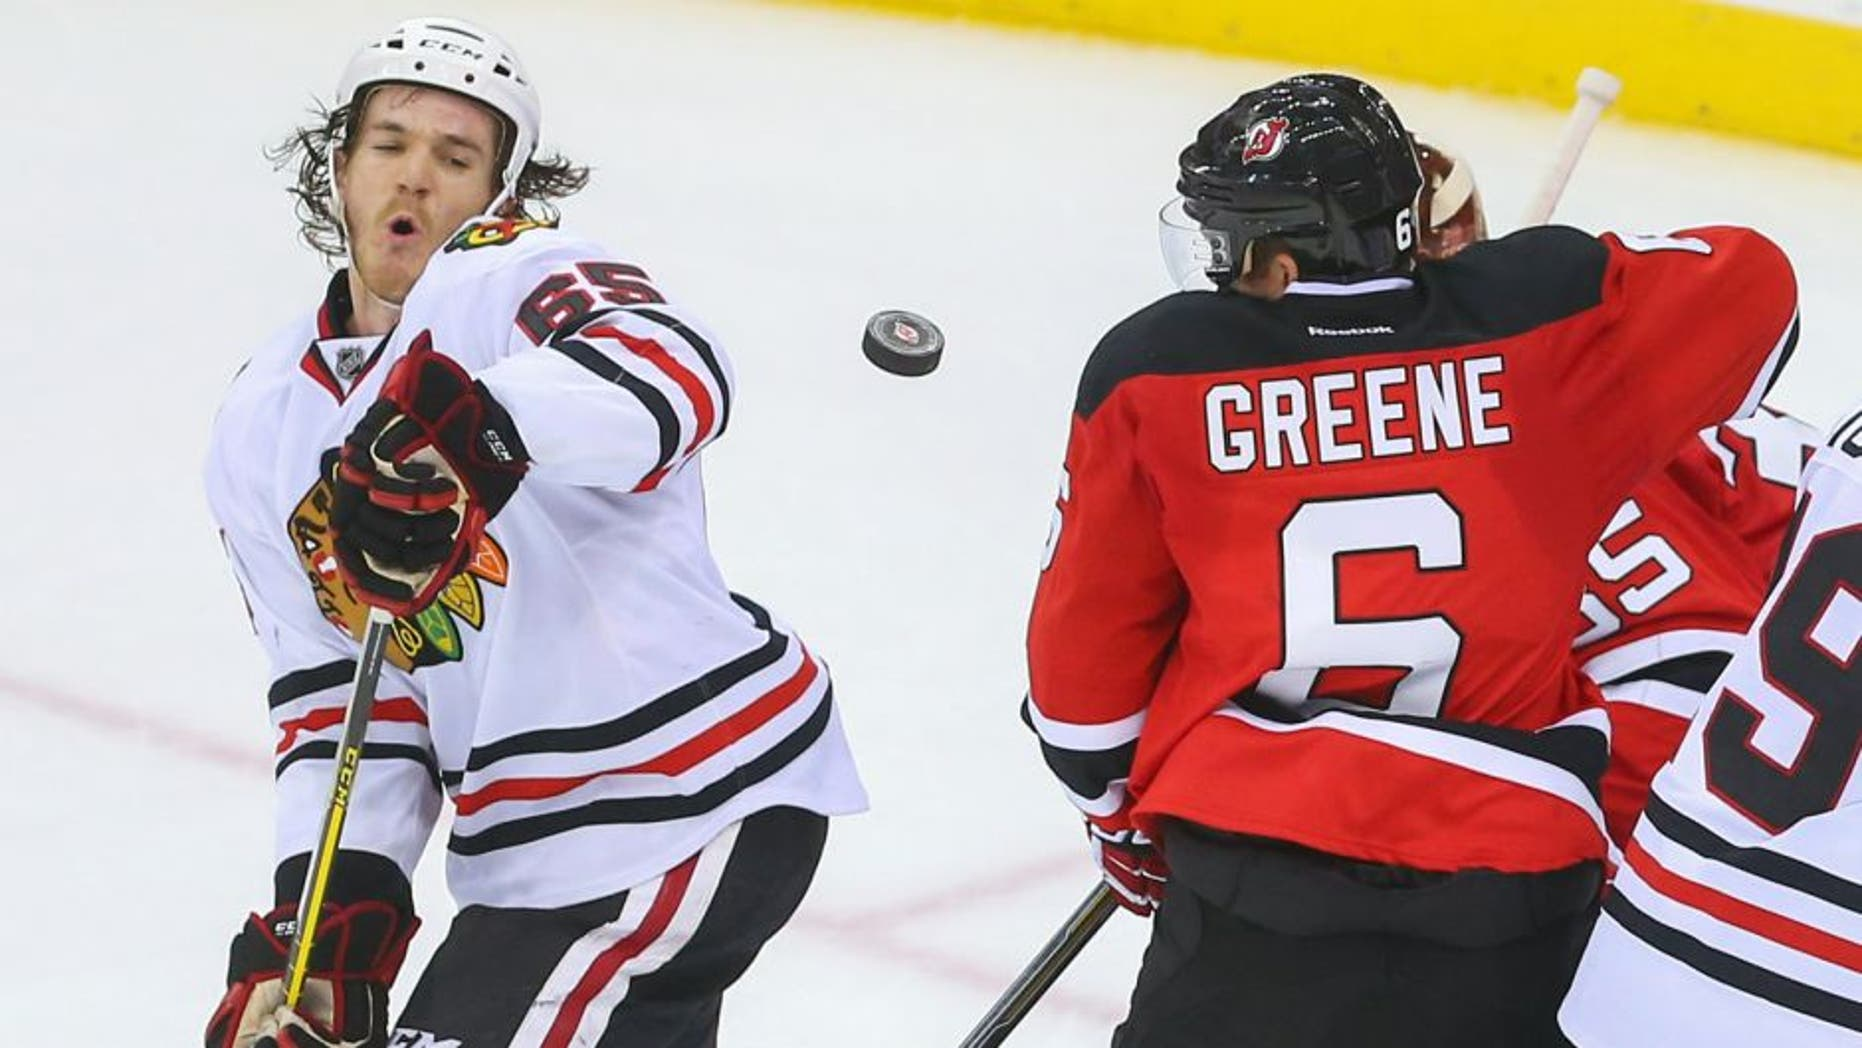 Nov 6, 2015; Newark, NJ, USA; Chicago Blackhawks center Andrew Shaw (65) and New Jersey Devils defenseman Andy Greene (6) look for the puck after a shot during the third period at Prudential Center. The Devils defeated the Blackhawks 4-2. Mandatory Credit: Ed Mulholland-USA TODAY Sports